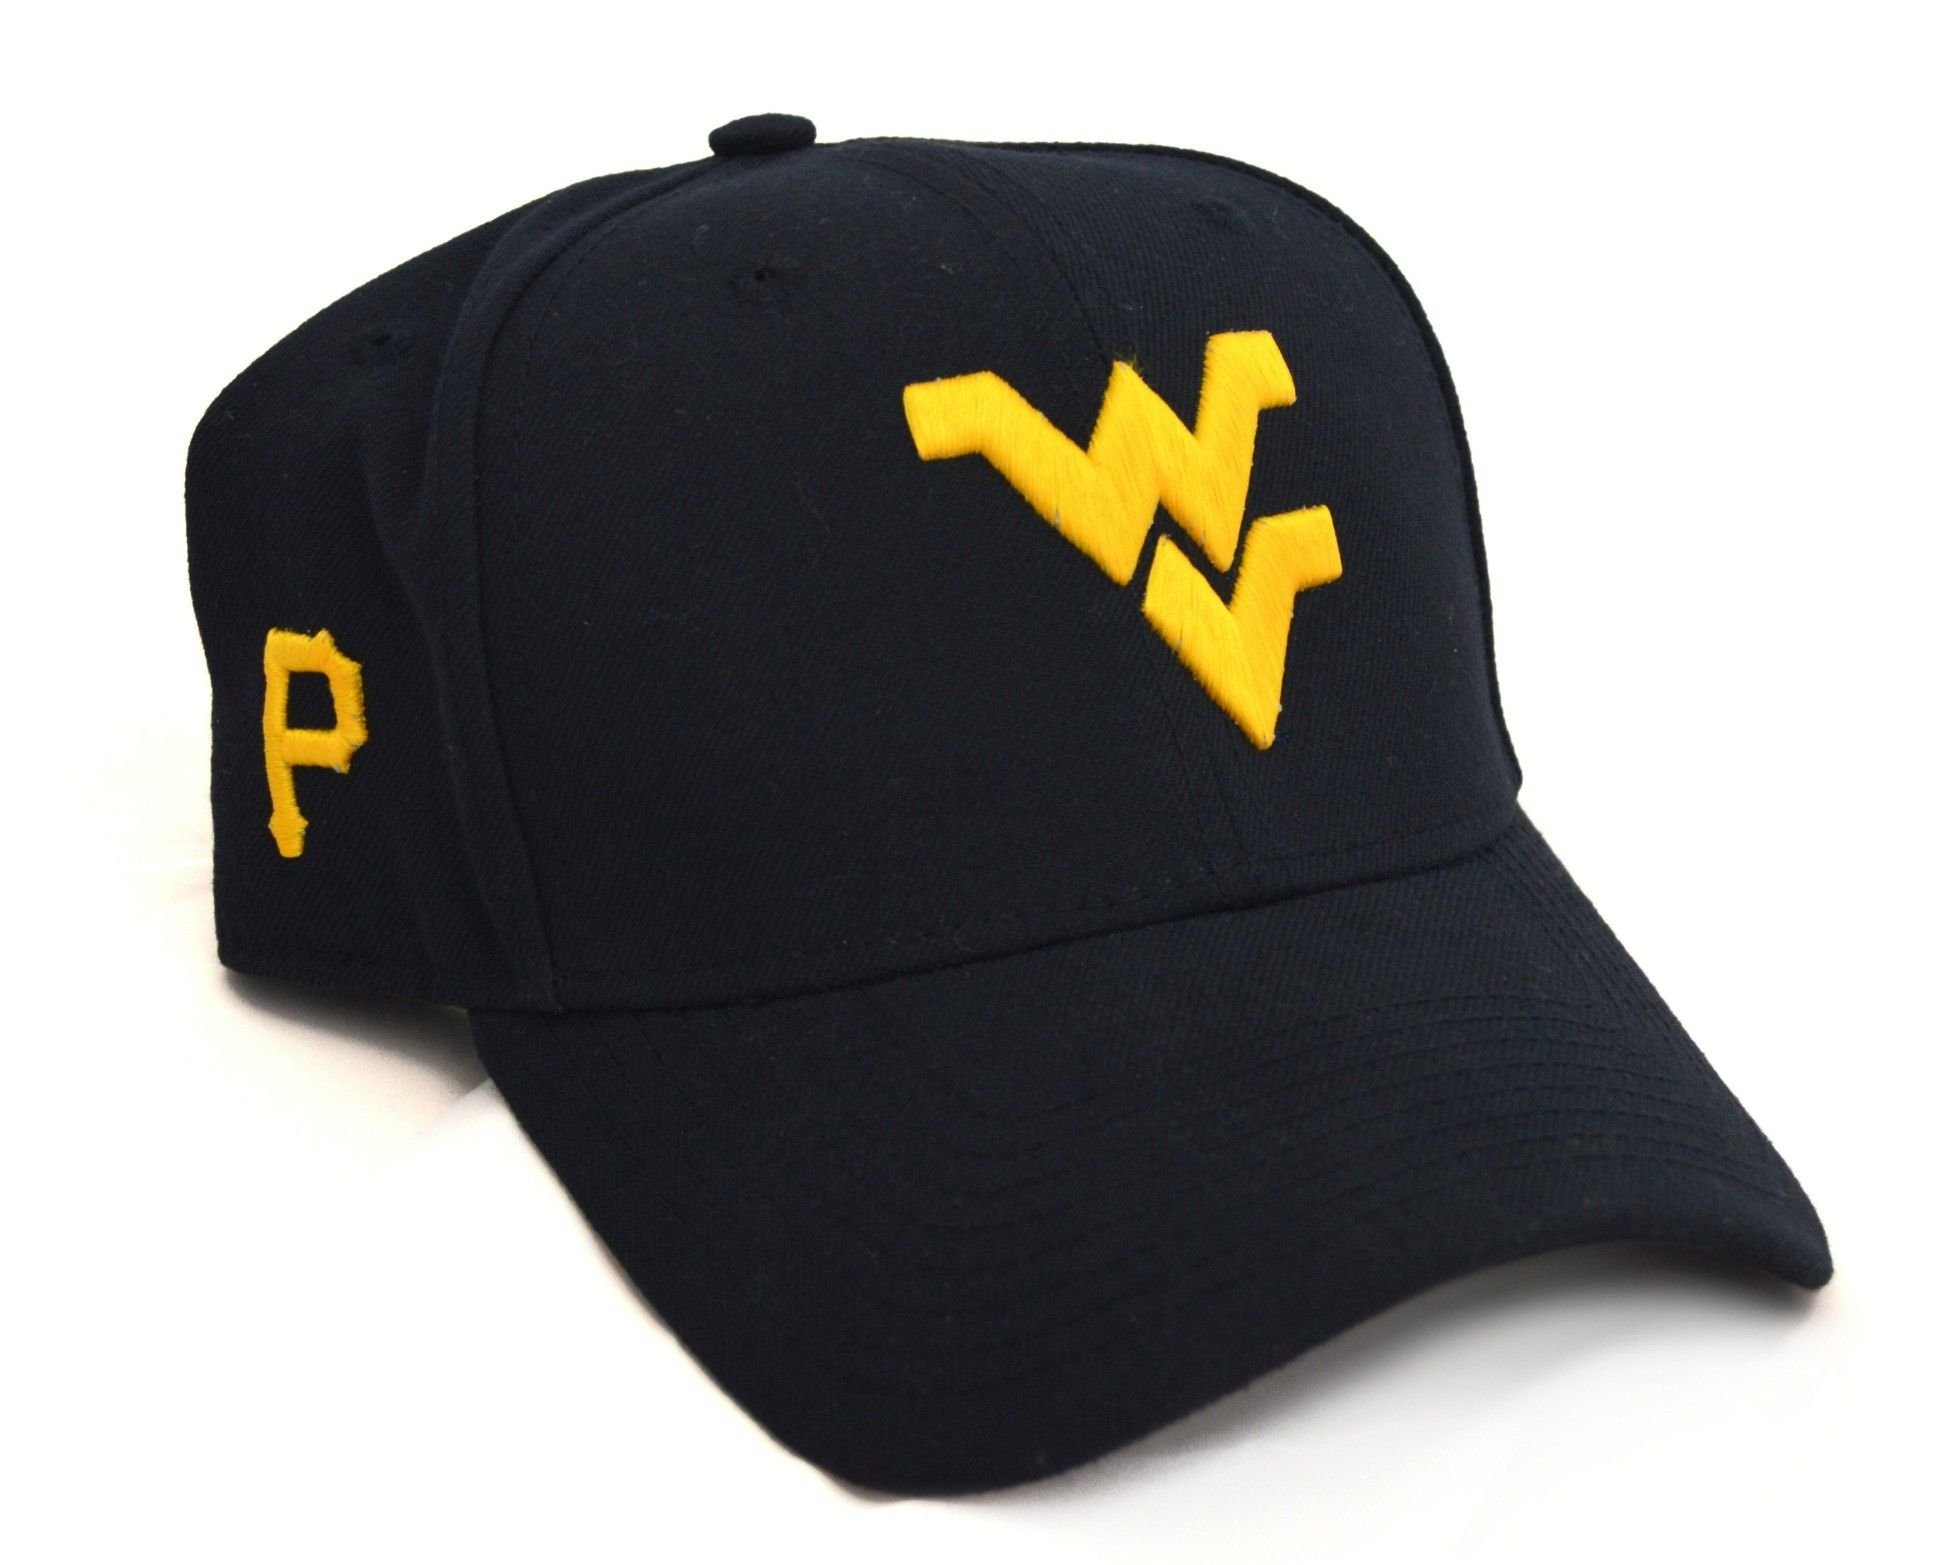 Give a big cheer for your two favorite teams - the WVU Mountaineers and the  Pittsburgh 10b2f6cf68a